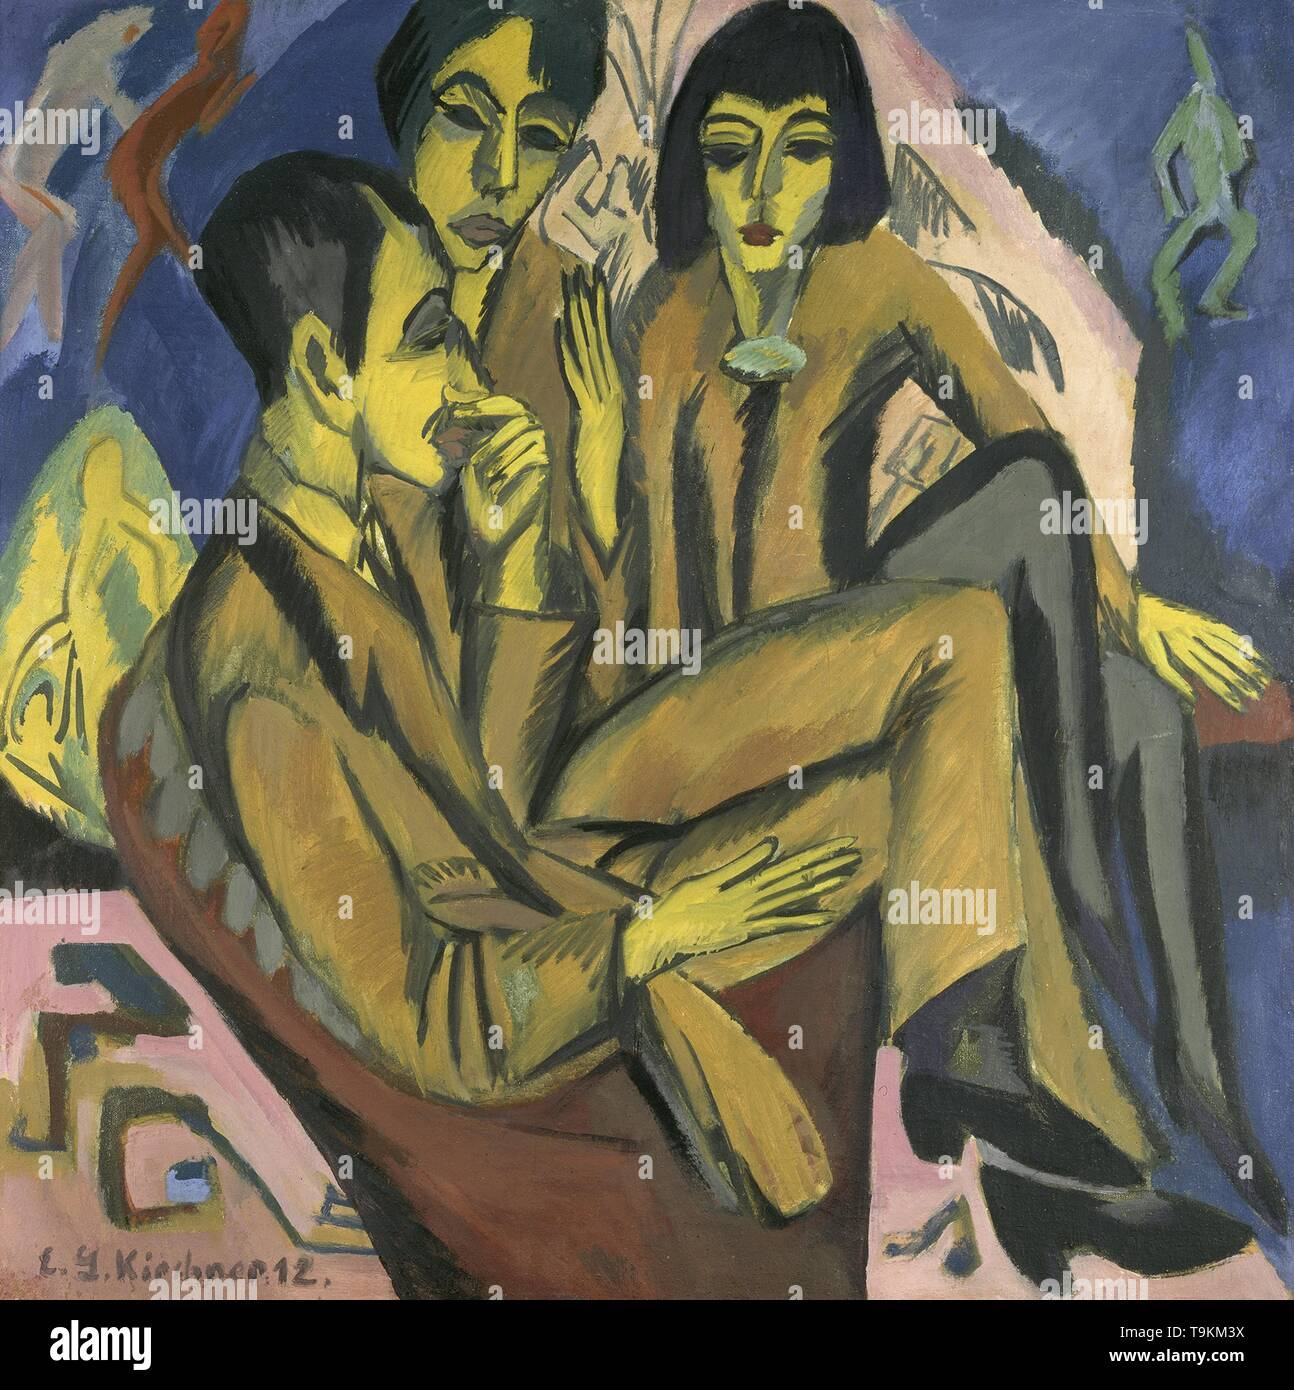 Artist group (Conversation of the artists). Museum: Osthaus Museum Hagen. Author: ERNST LUDWIG KIRCHNER. - Stock Image